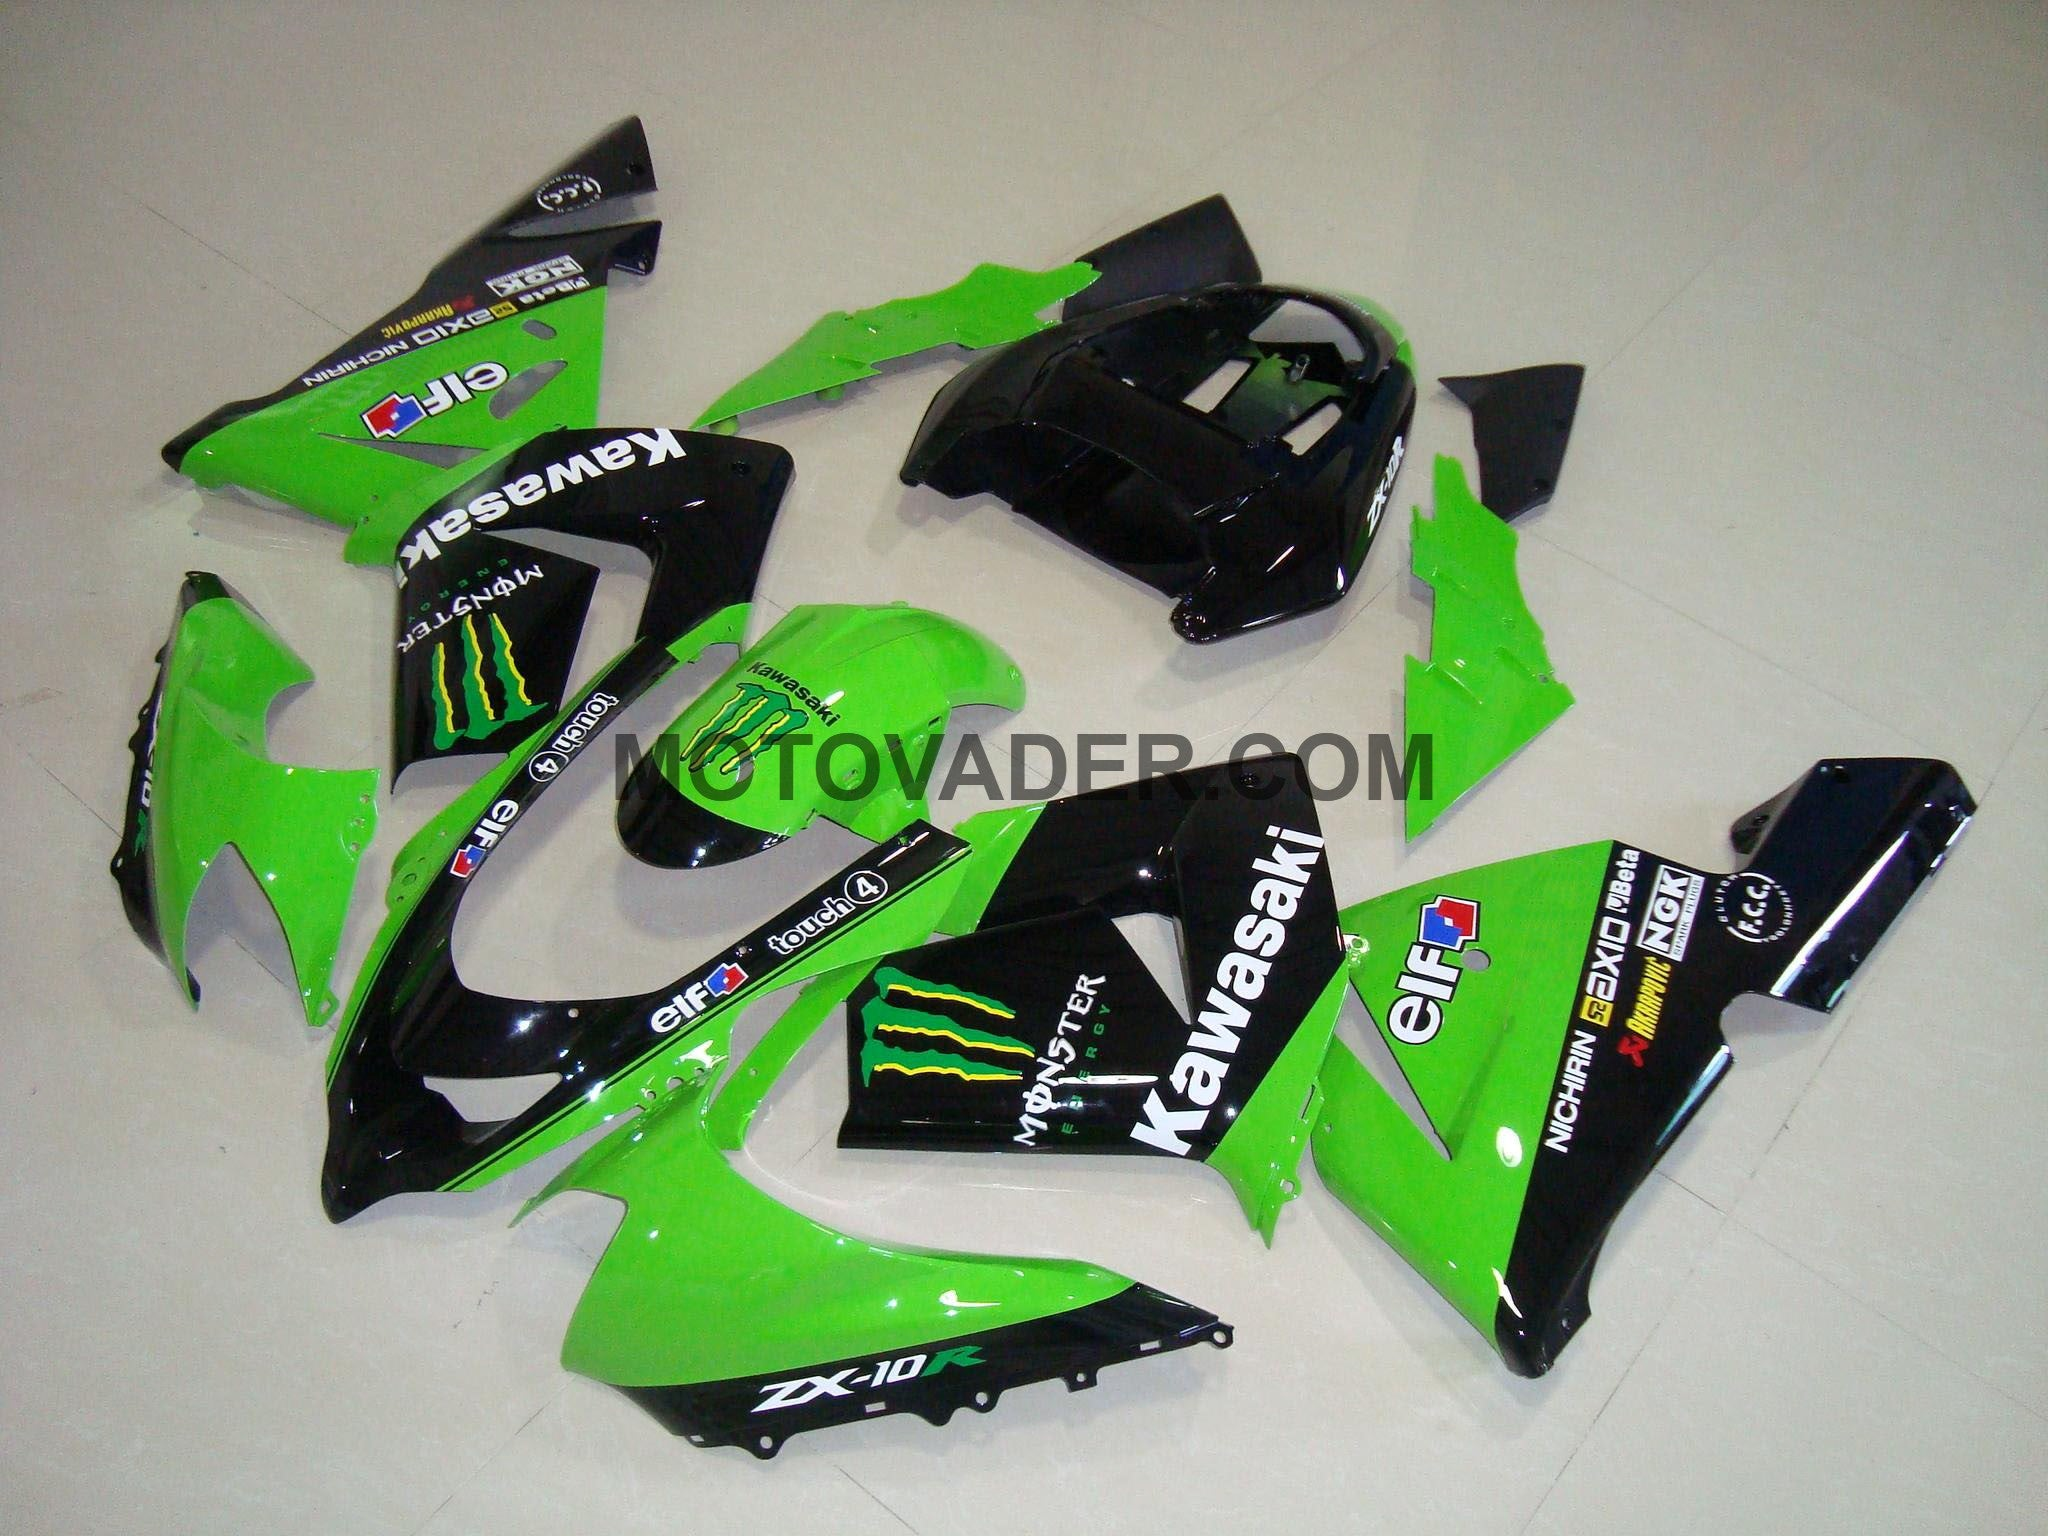 Kawasaki ZX-10R 2004-2005 Monster Fairing